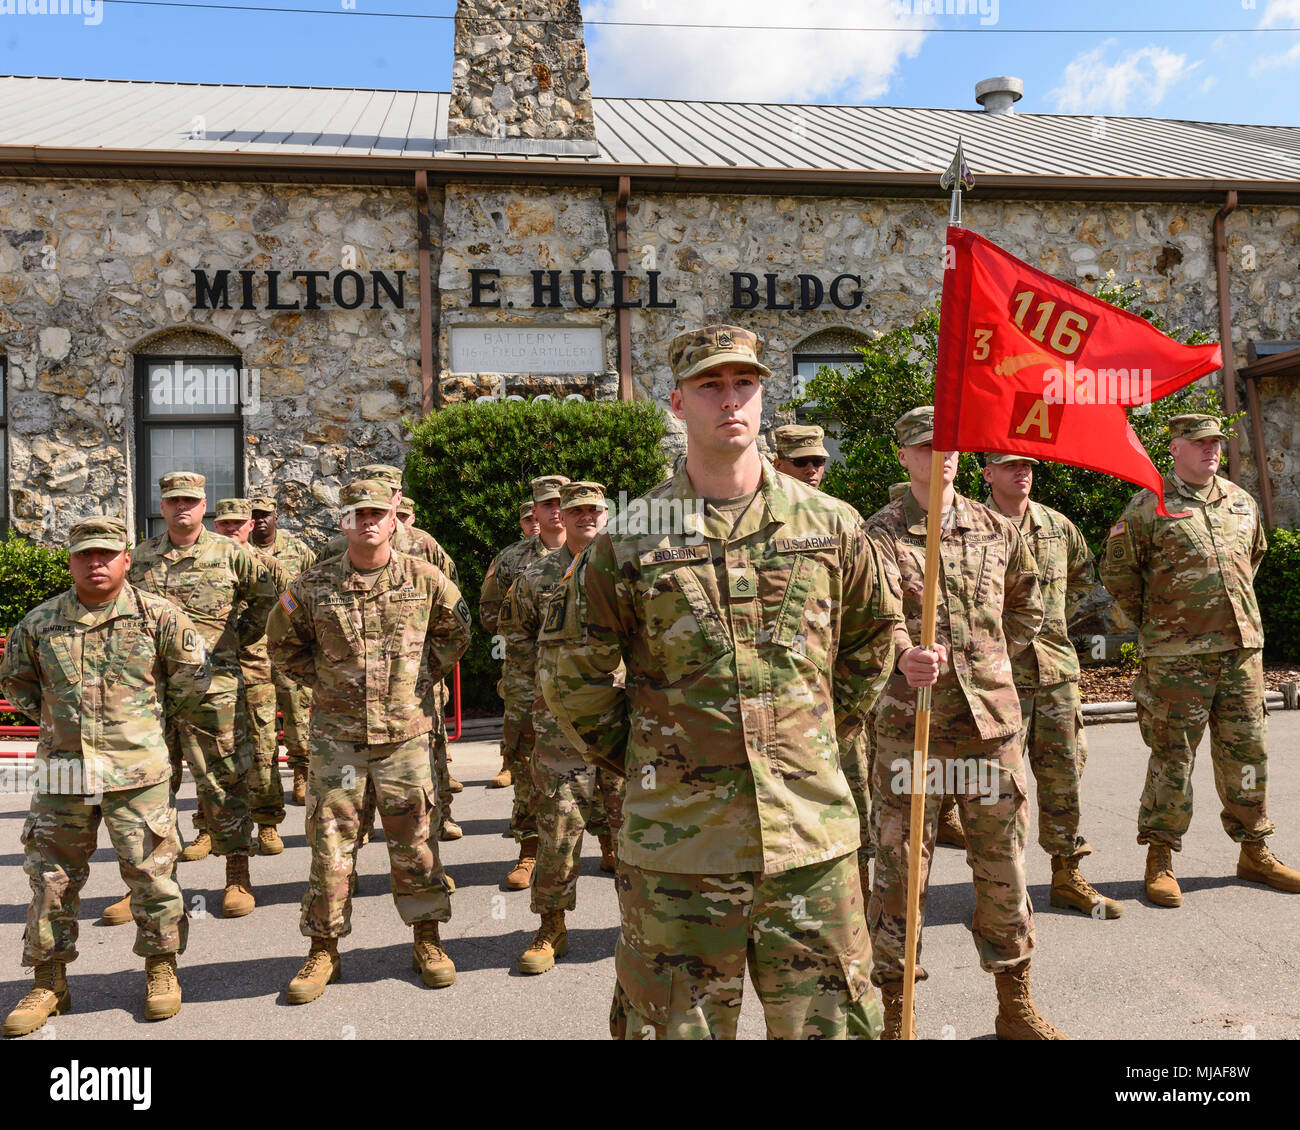 Approximately 30 Soldiers with the Florida National Guard's Battery A, 3rd Battalion, 116th Field Artillery Regiment stand in formation during their departure ceremony in front of the historic Milton E. Hull building at the Florida Strawberry Festival Fairground in Plant City. This building housed members of the Plant City-based FLNG unit from shortly after World War II until their current armory was constructed many decades later. - Stock Image